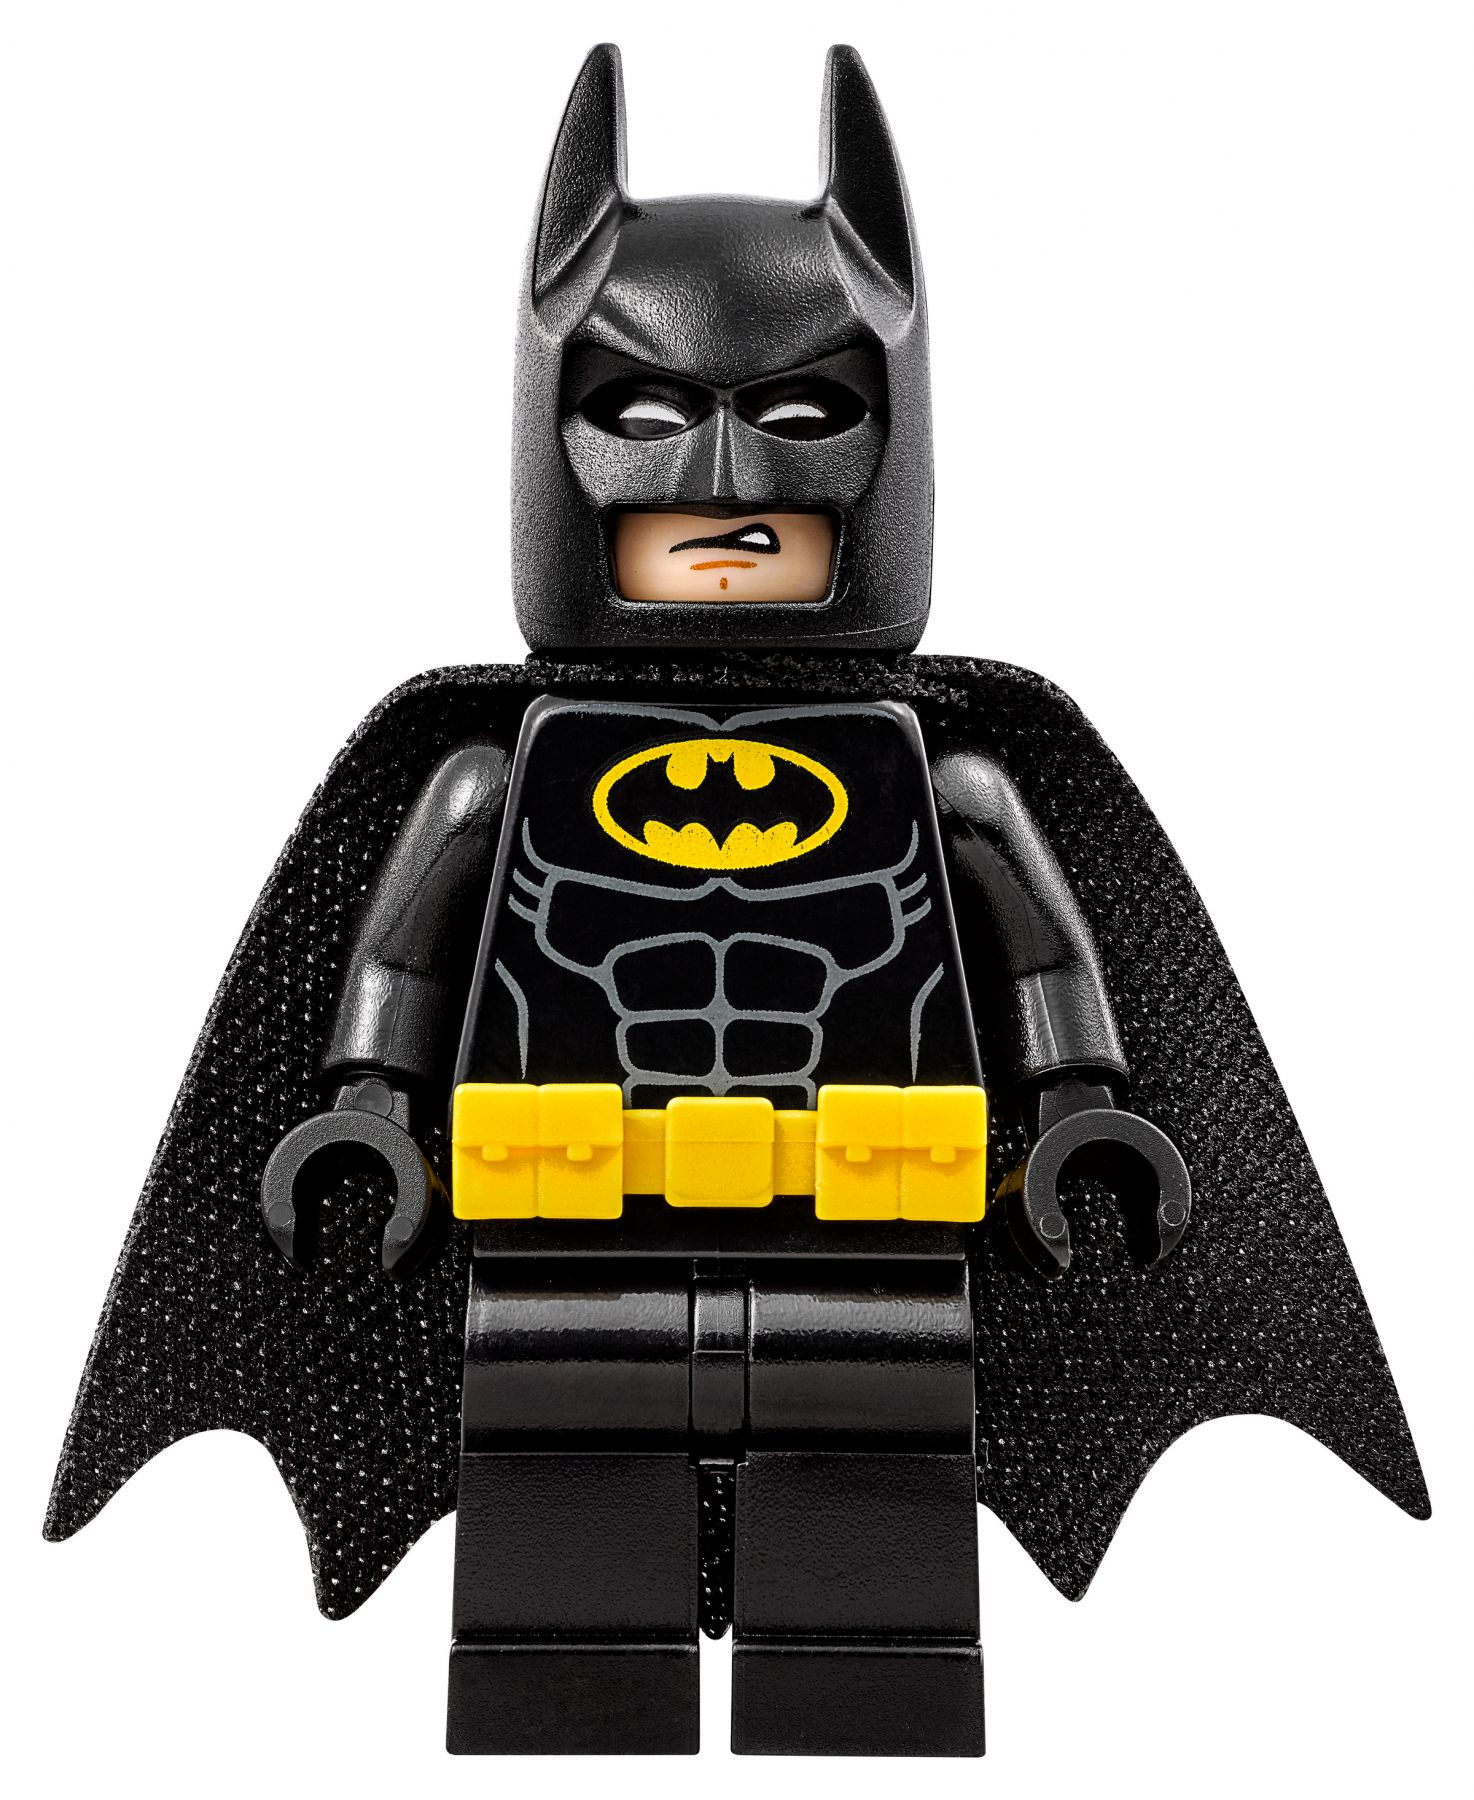 LEGO The LEGO Batman Movie 70900 Jokers Flucht mit den Ballons LEGO_70900_alt8.jpg